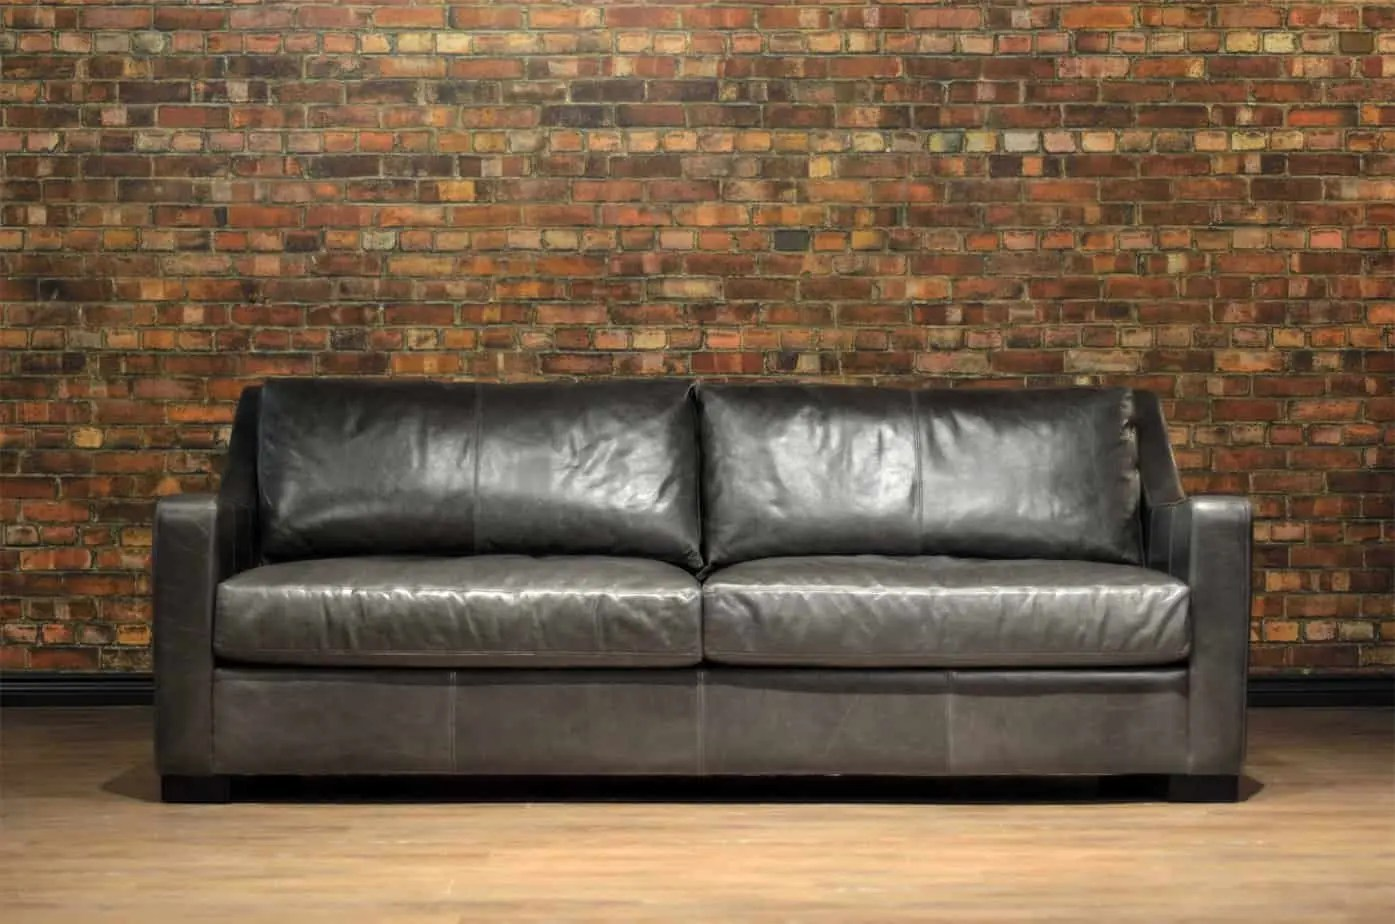 Leather Recliner Chairs Canada Leather Sofa And Sectional Choose Color Leather And Size